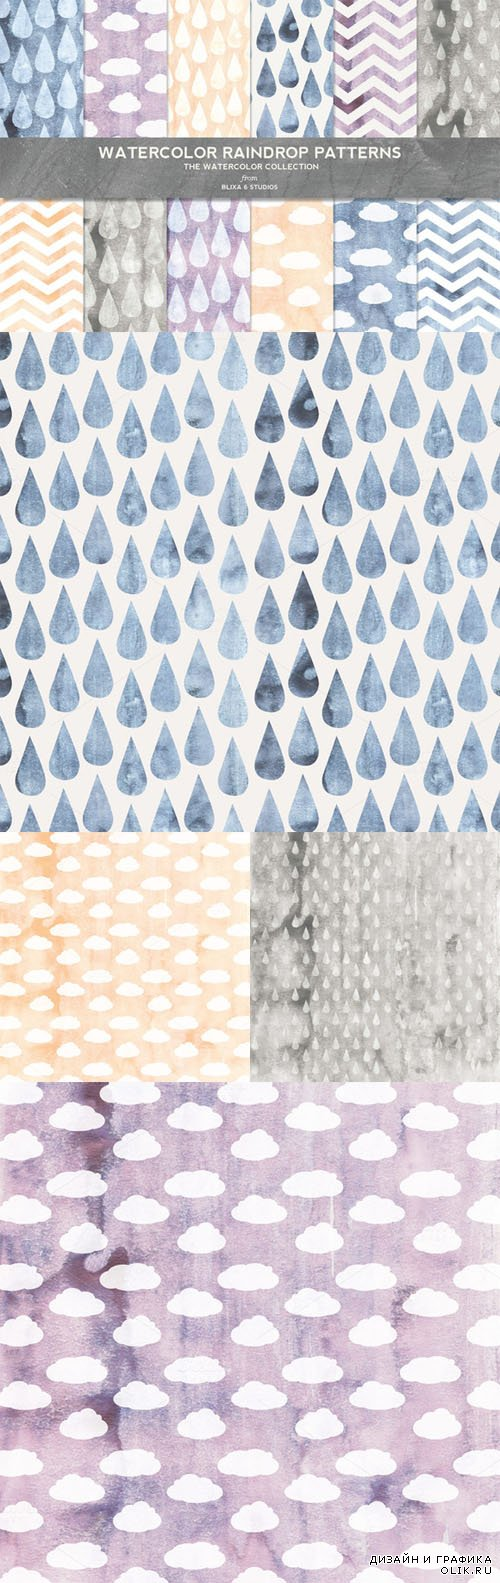 Creativemarket - Watercolor Raindrop Digital Patterns 237104